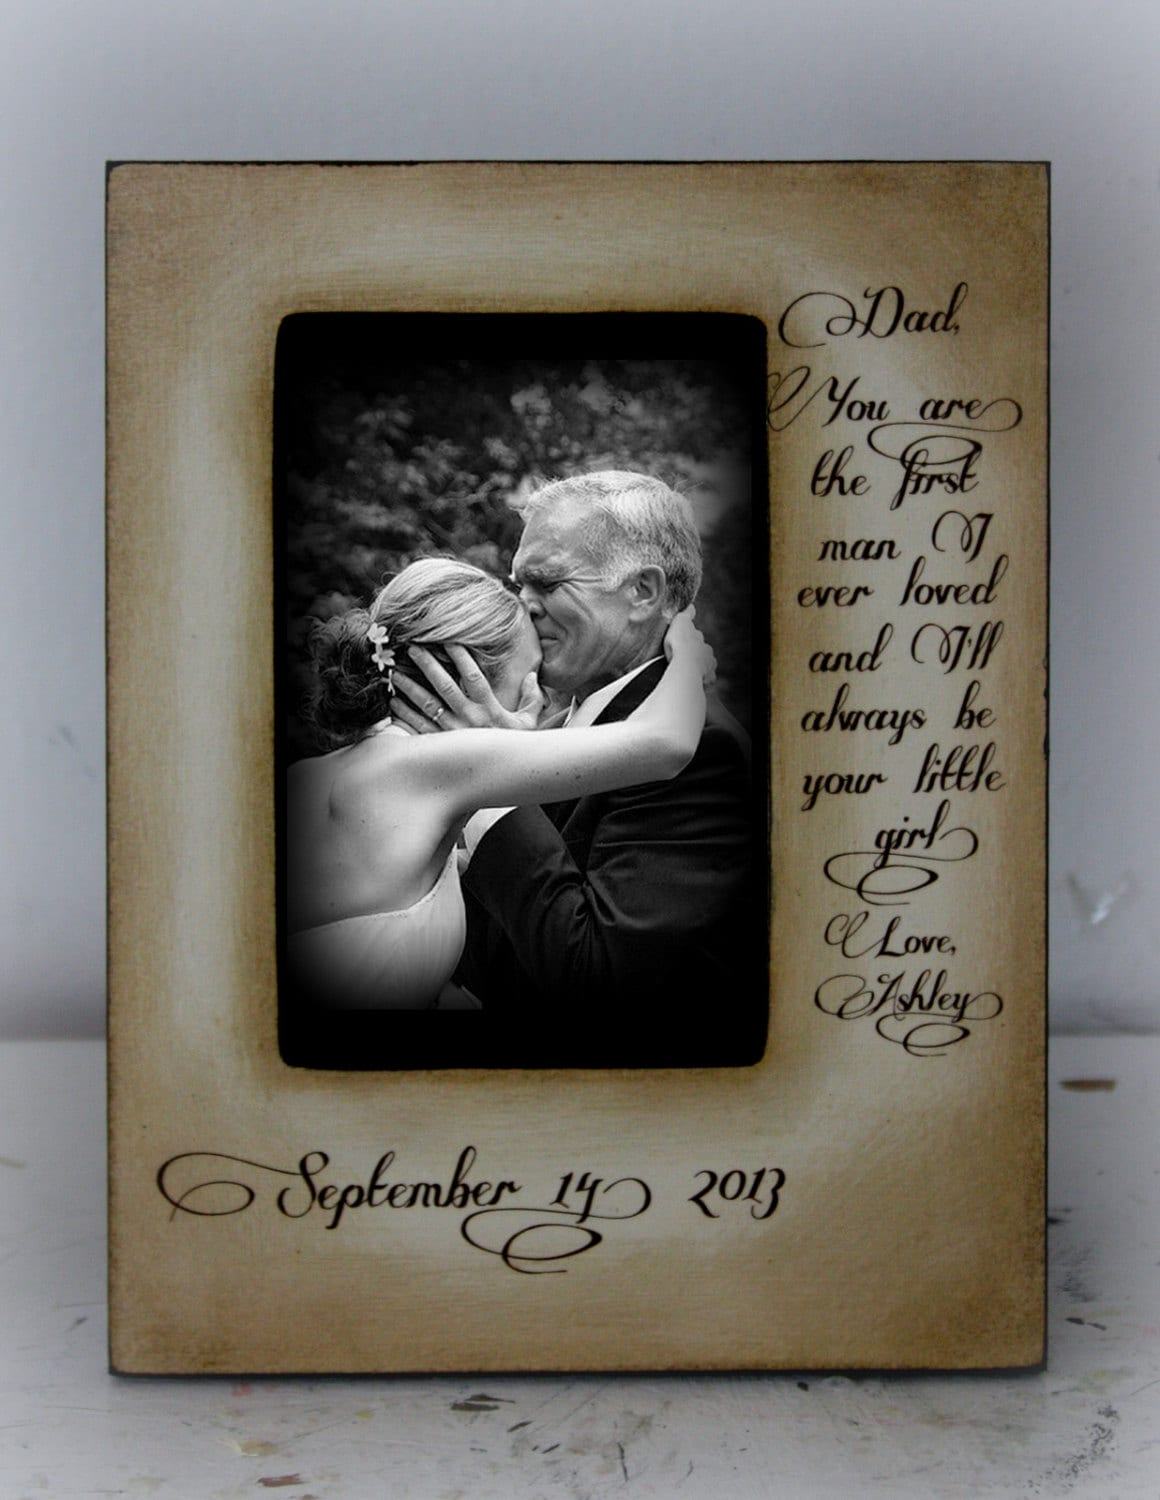 Wedding Gift For Dad From Son : Father Daughter Wedding Frame Bride First man I ever loved